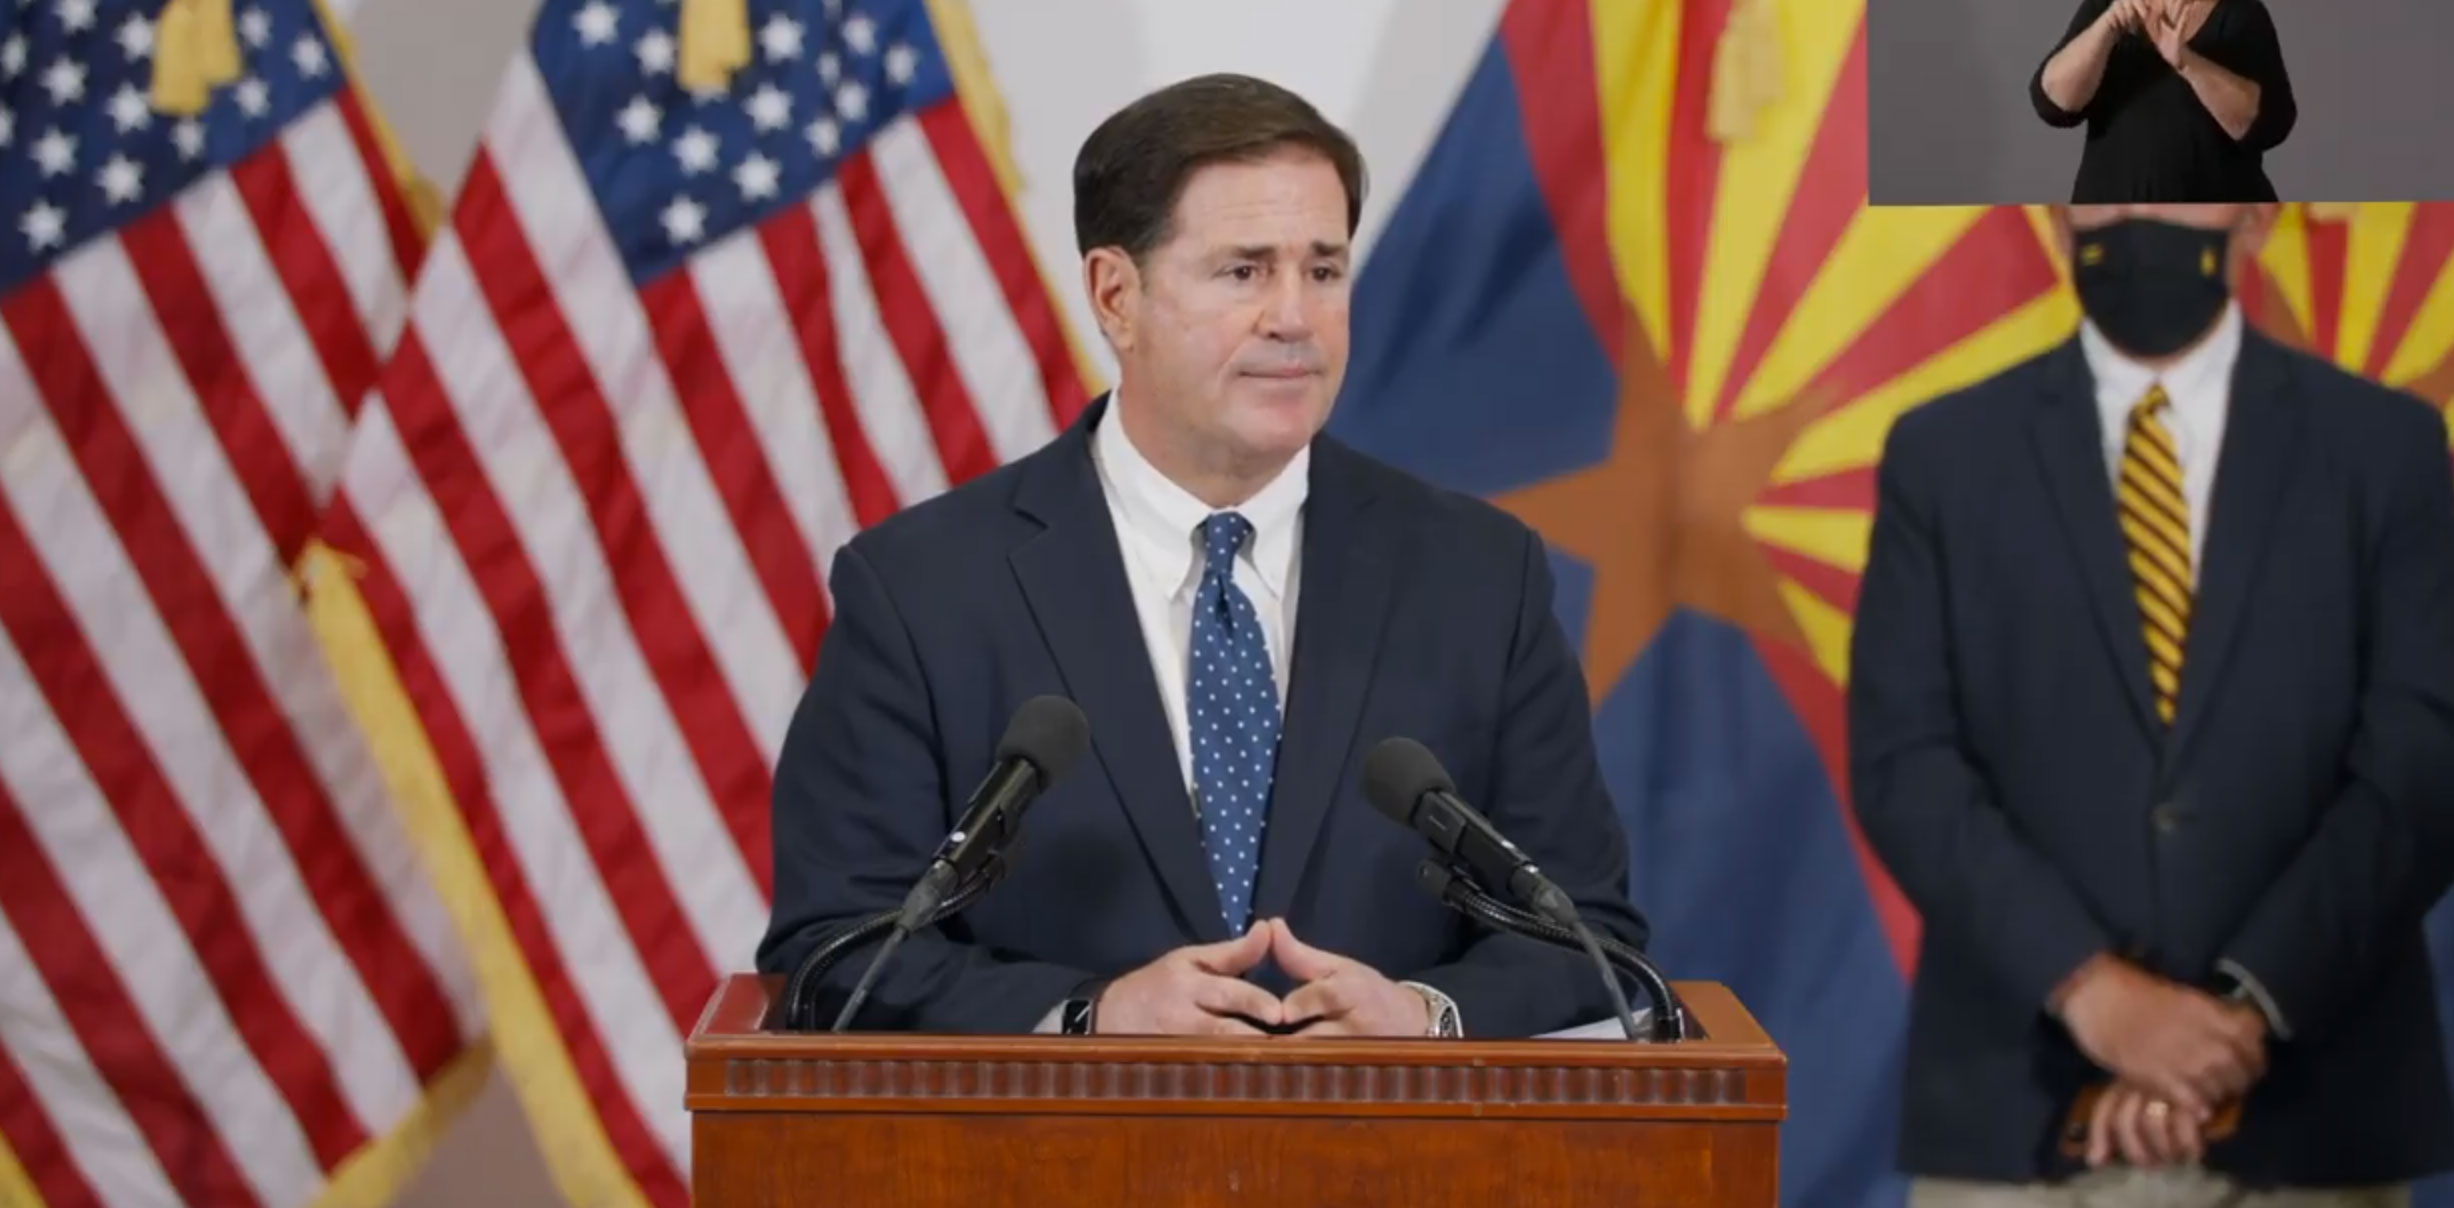 Gov. Doug Ducey speaking at a press conference on Thursday, Sept. 28, 2020.